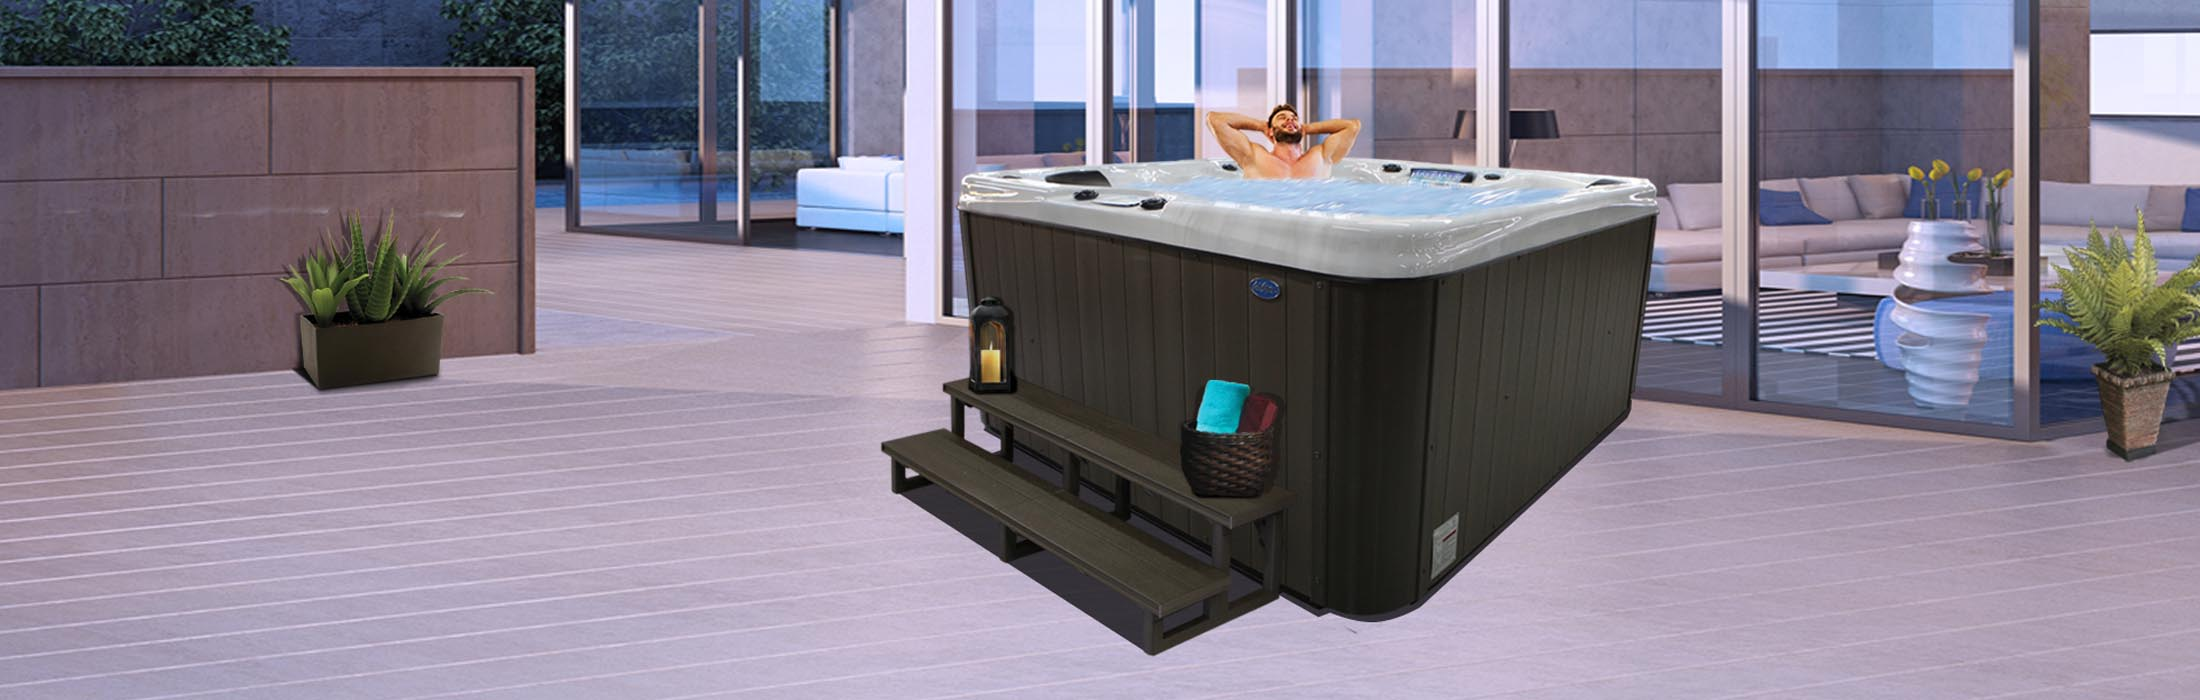 plastic lounge clearwater features jets the sunrise cover spa adults opening with two and spas air color tone led seating for tub controls griffin multi hot light product pool thermal